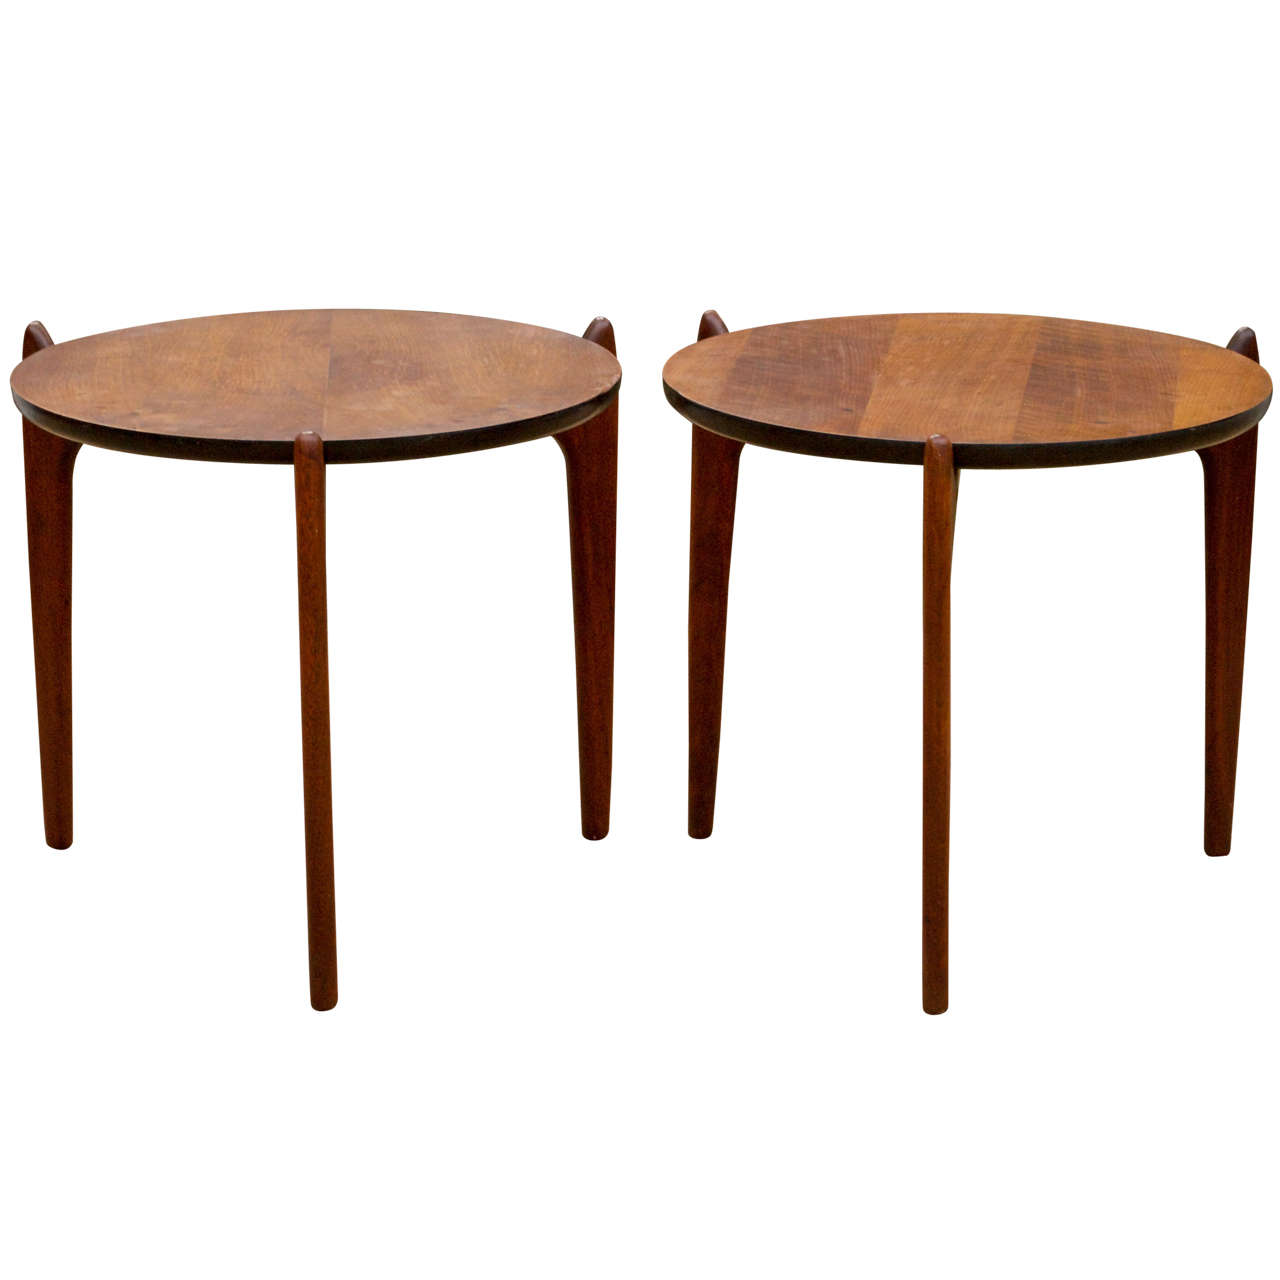 Walnut end tables at 1stdibs for Walnut side table